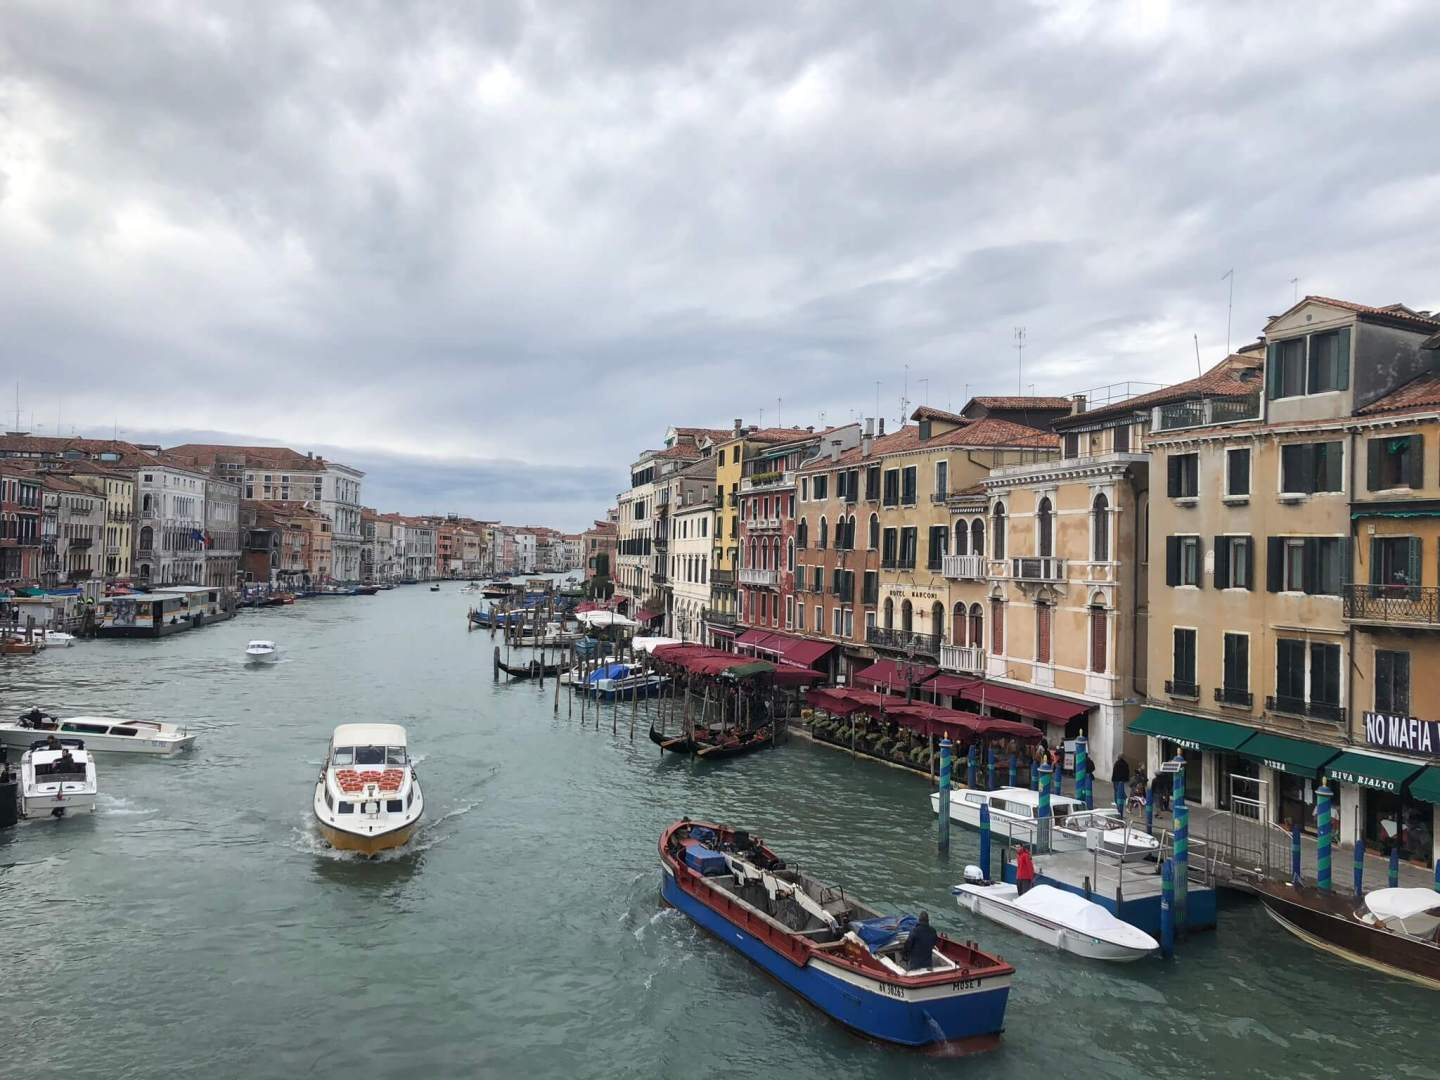 Pro's And Con's Of Visiting Venice Out Of Season